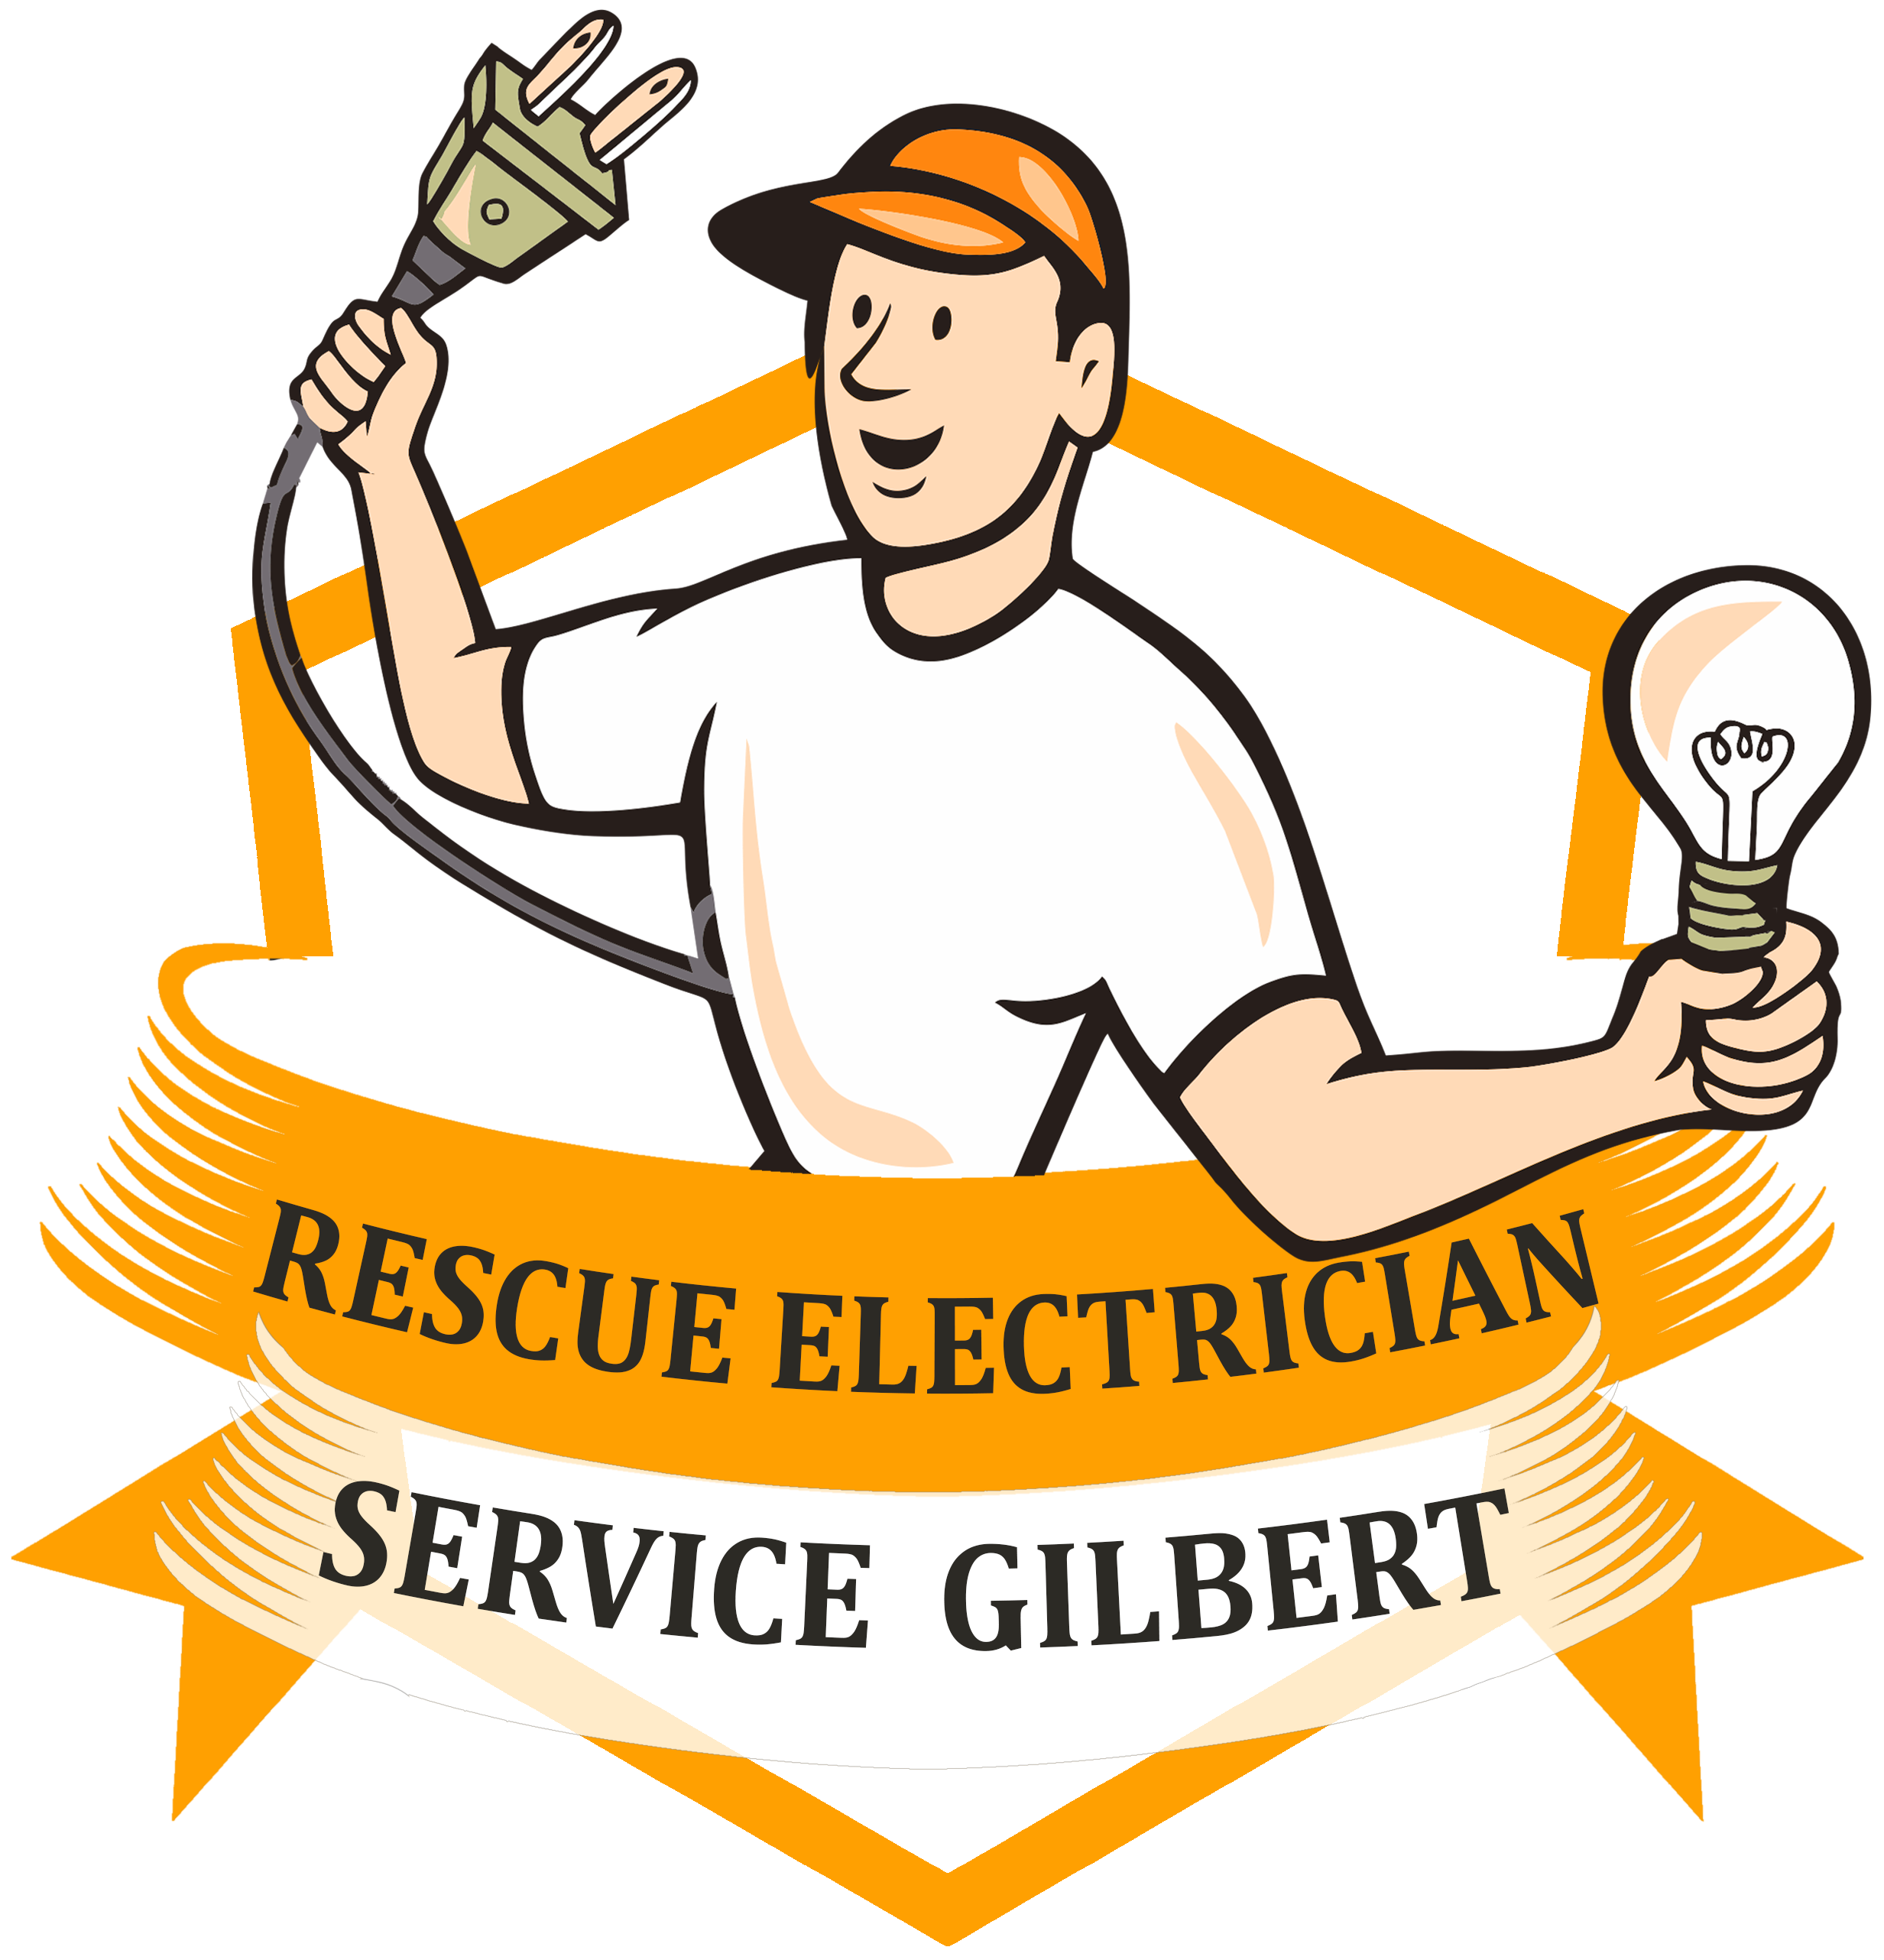 Electrician Gilbert Is A Family Owned And Operated Full Service Electrical Contractor Serving All Of Gilbert Electrician Services Electrician Electric Repair